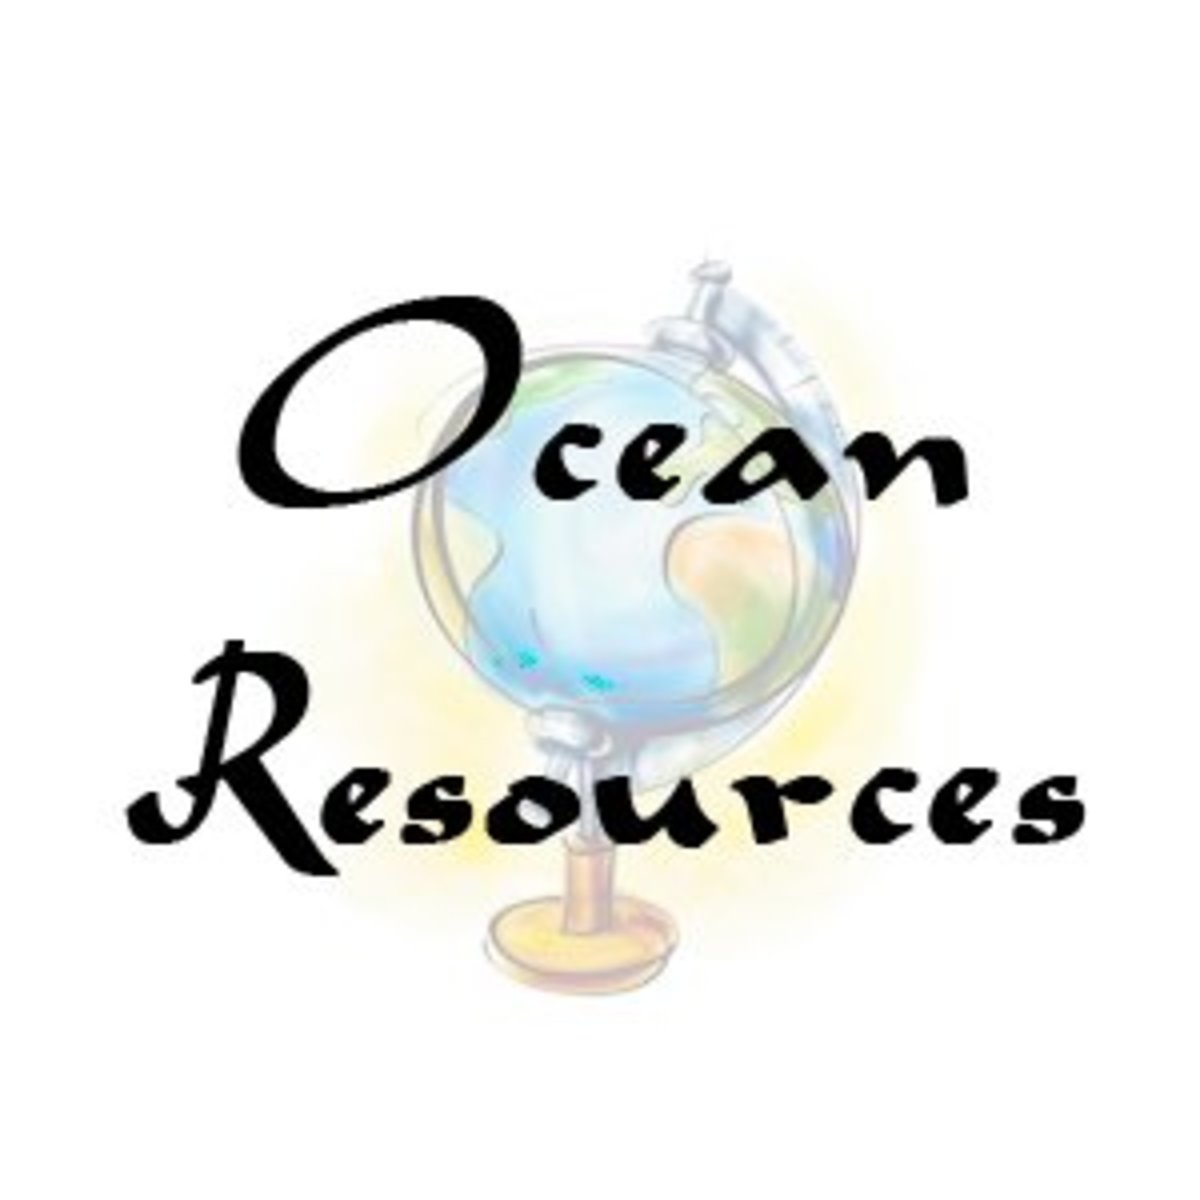 Oceans Resources - Ocean Minerals and Resources